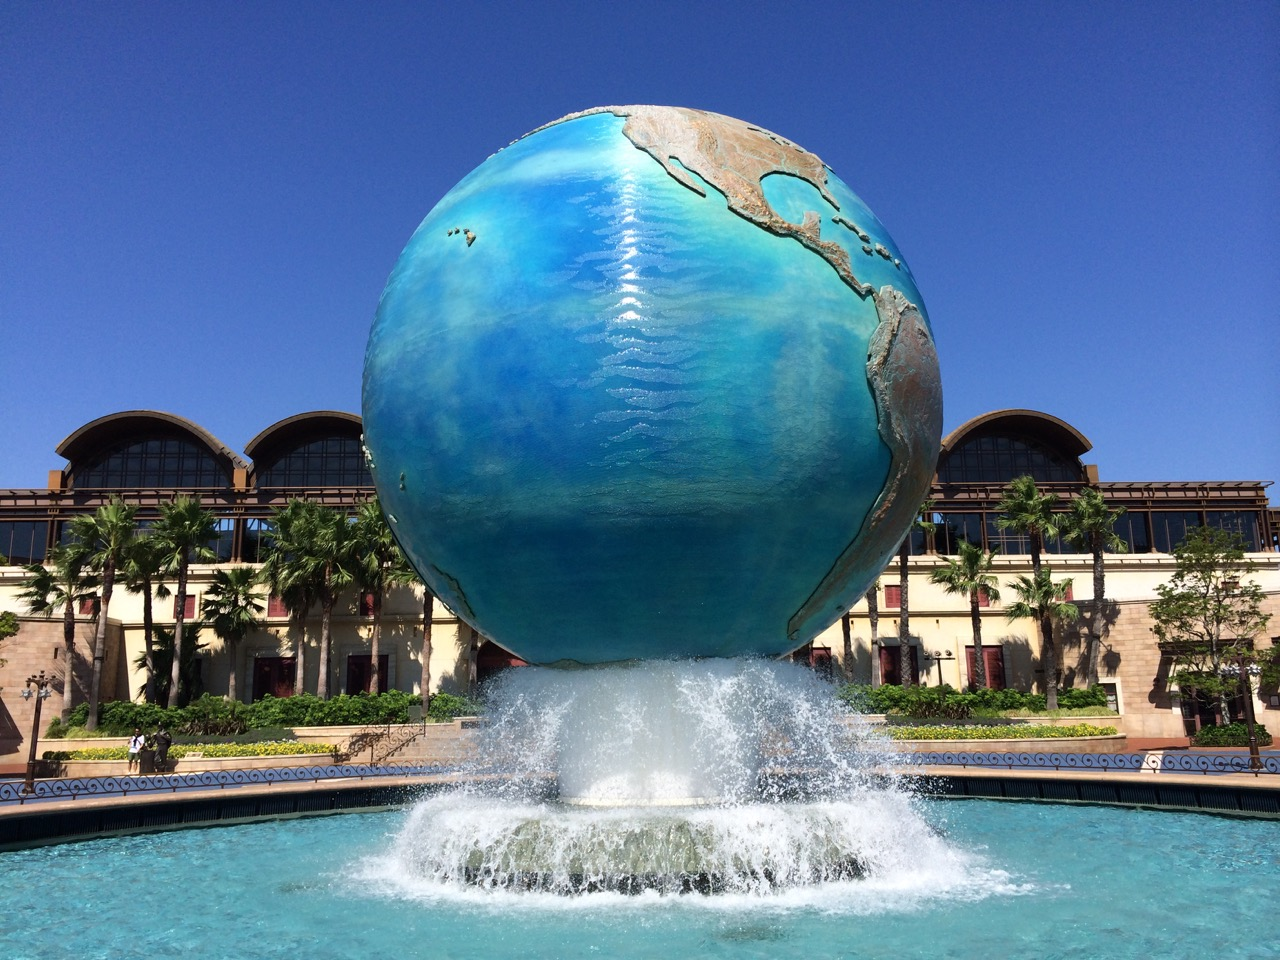 The AquaSphere. Photo by J. Jeff Kober.